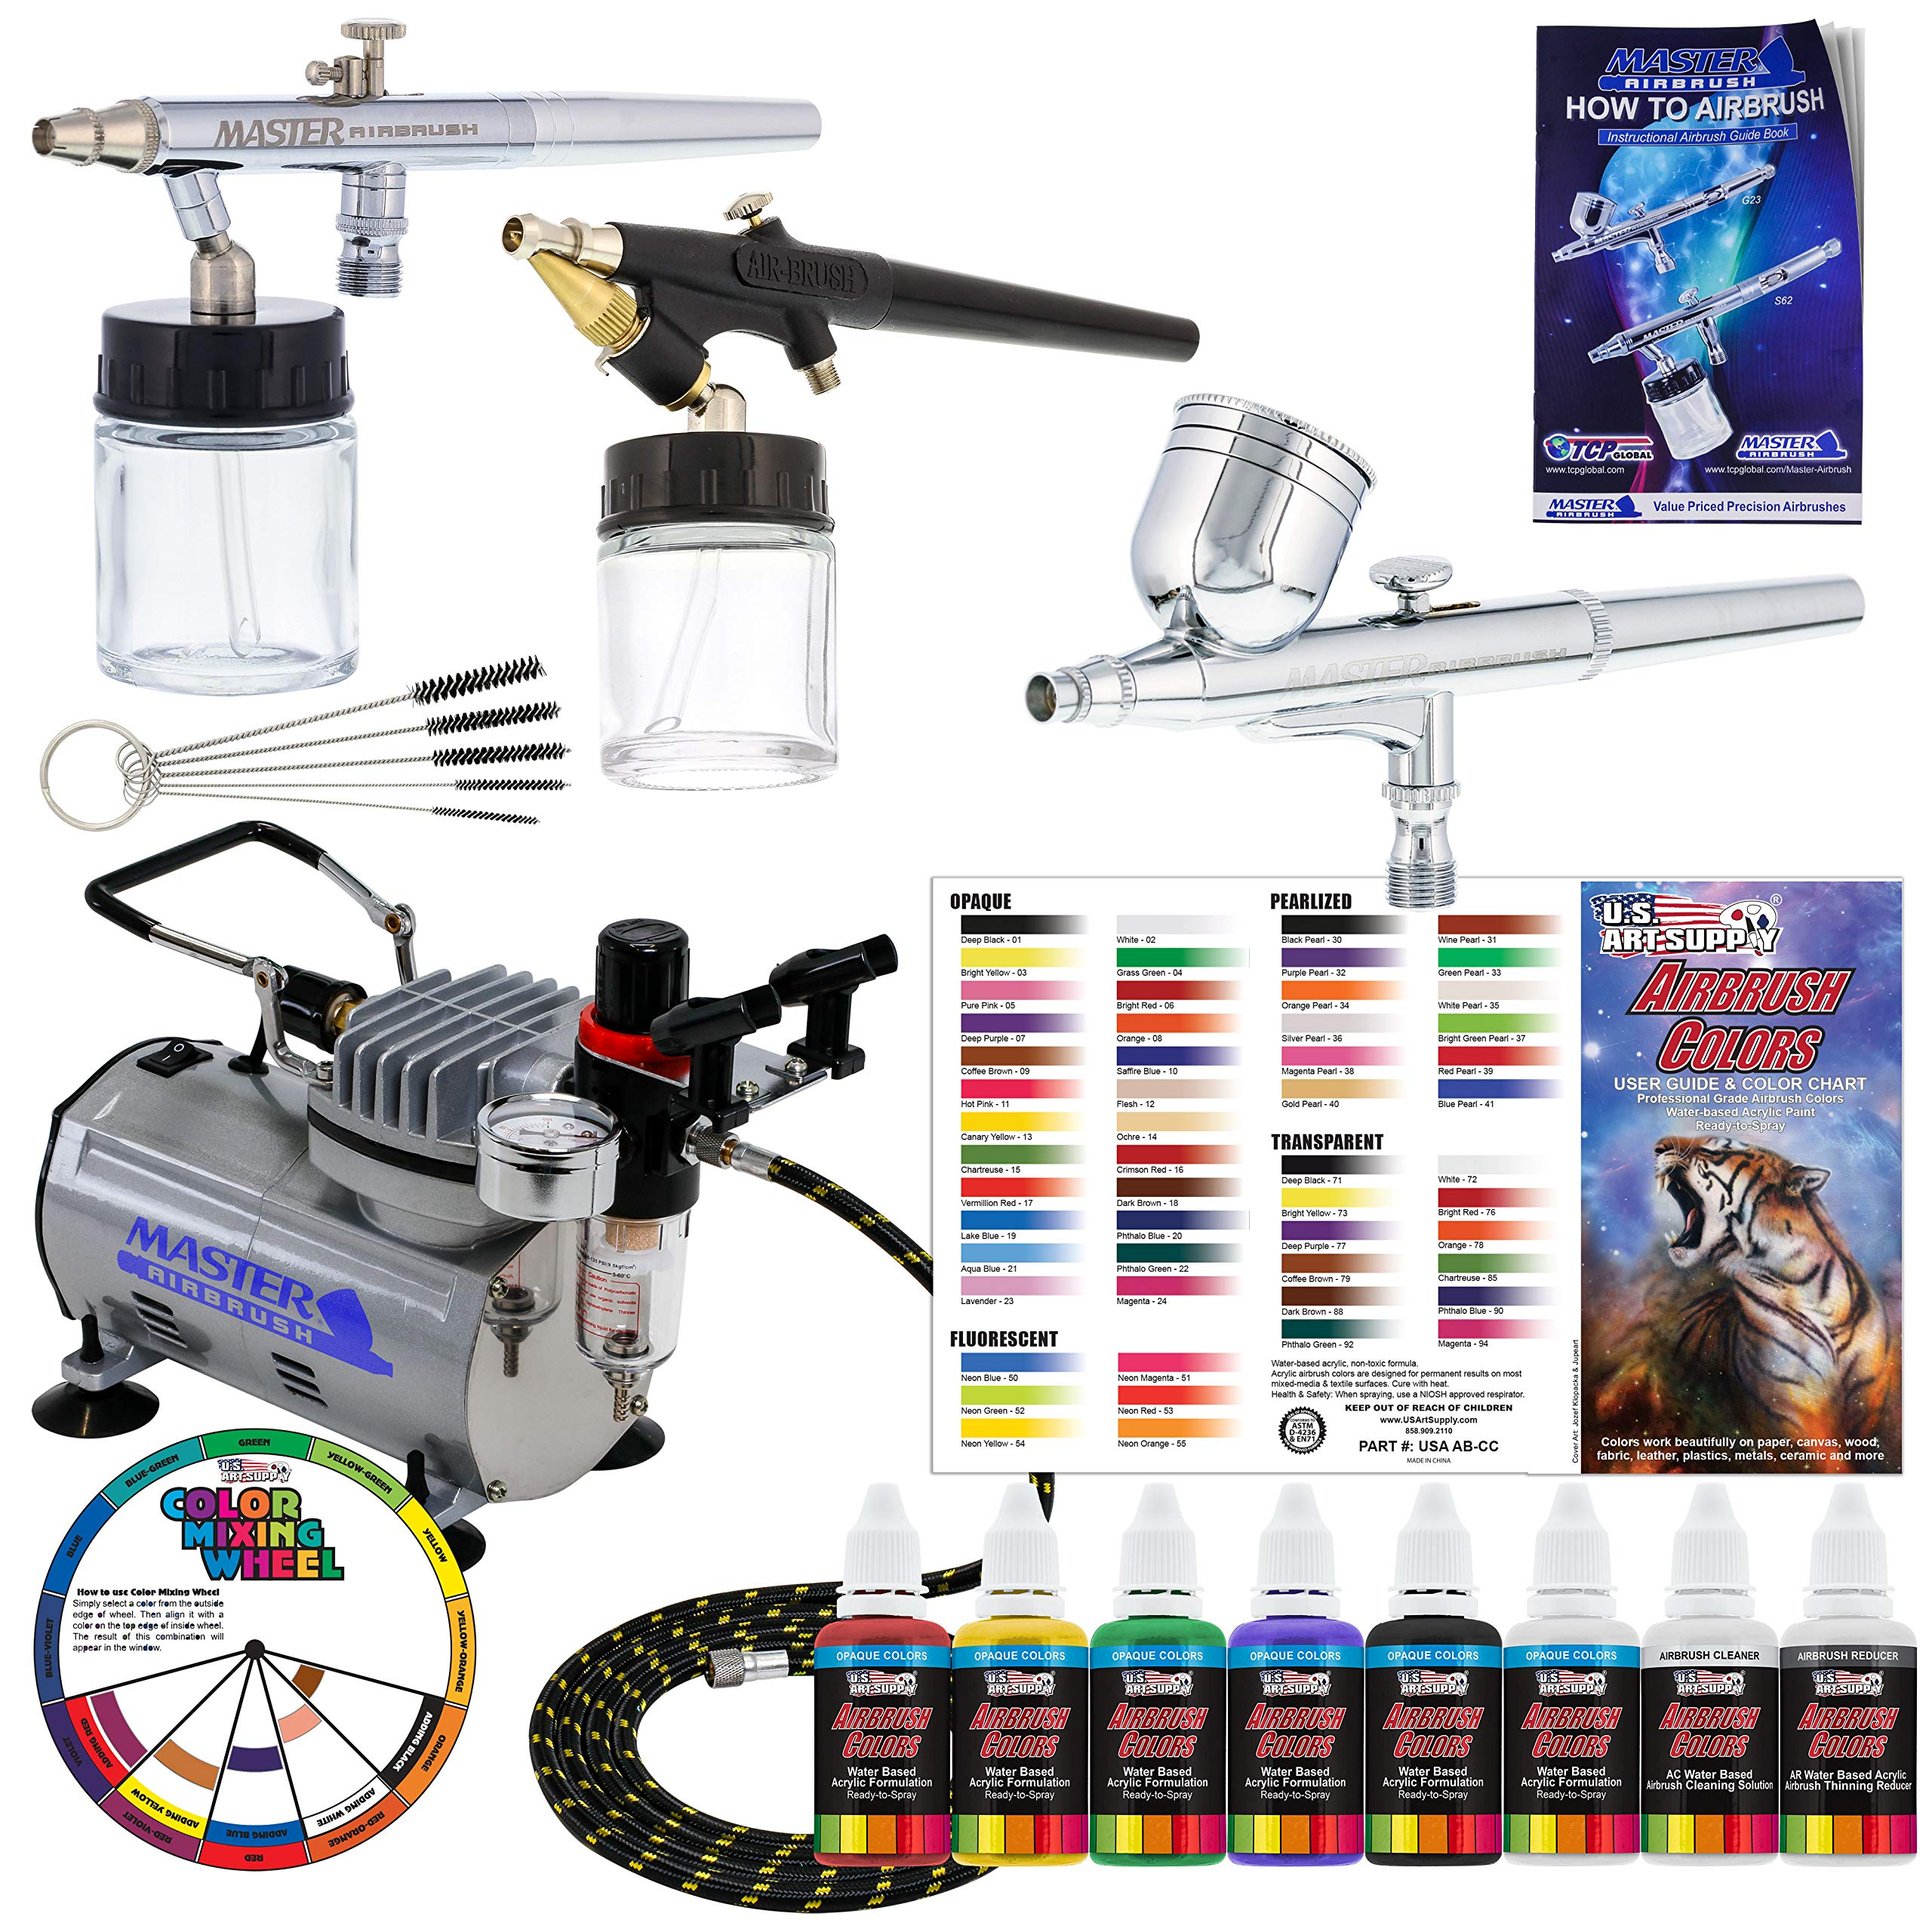 3 Airbrush Professional Master Airbrush Airbrushing System Kit with 6 U.S. Art Supply Primary Colors Acrylic Paint Artist Set - G22, S68, E91 Gravity & Siphon Feed Airbrushes and Air Compressor by Master Airbrush